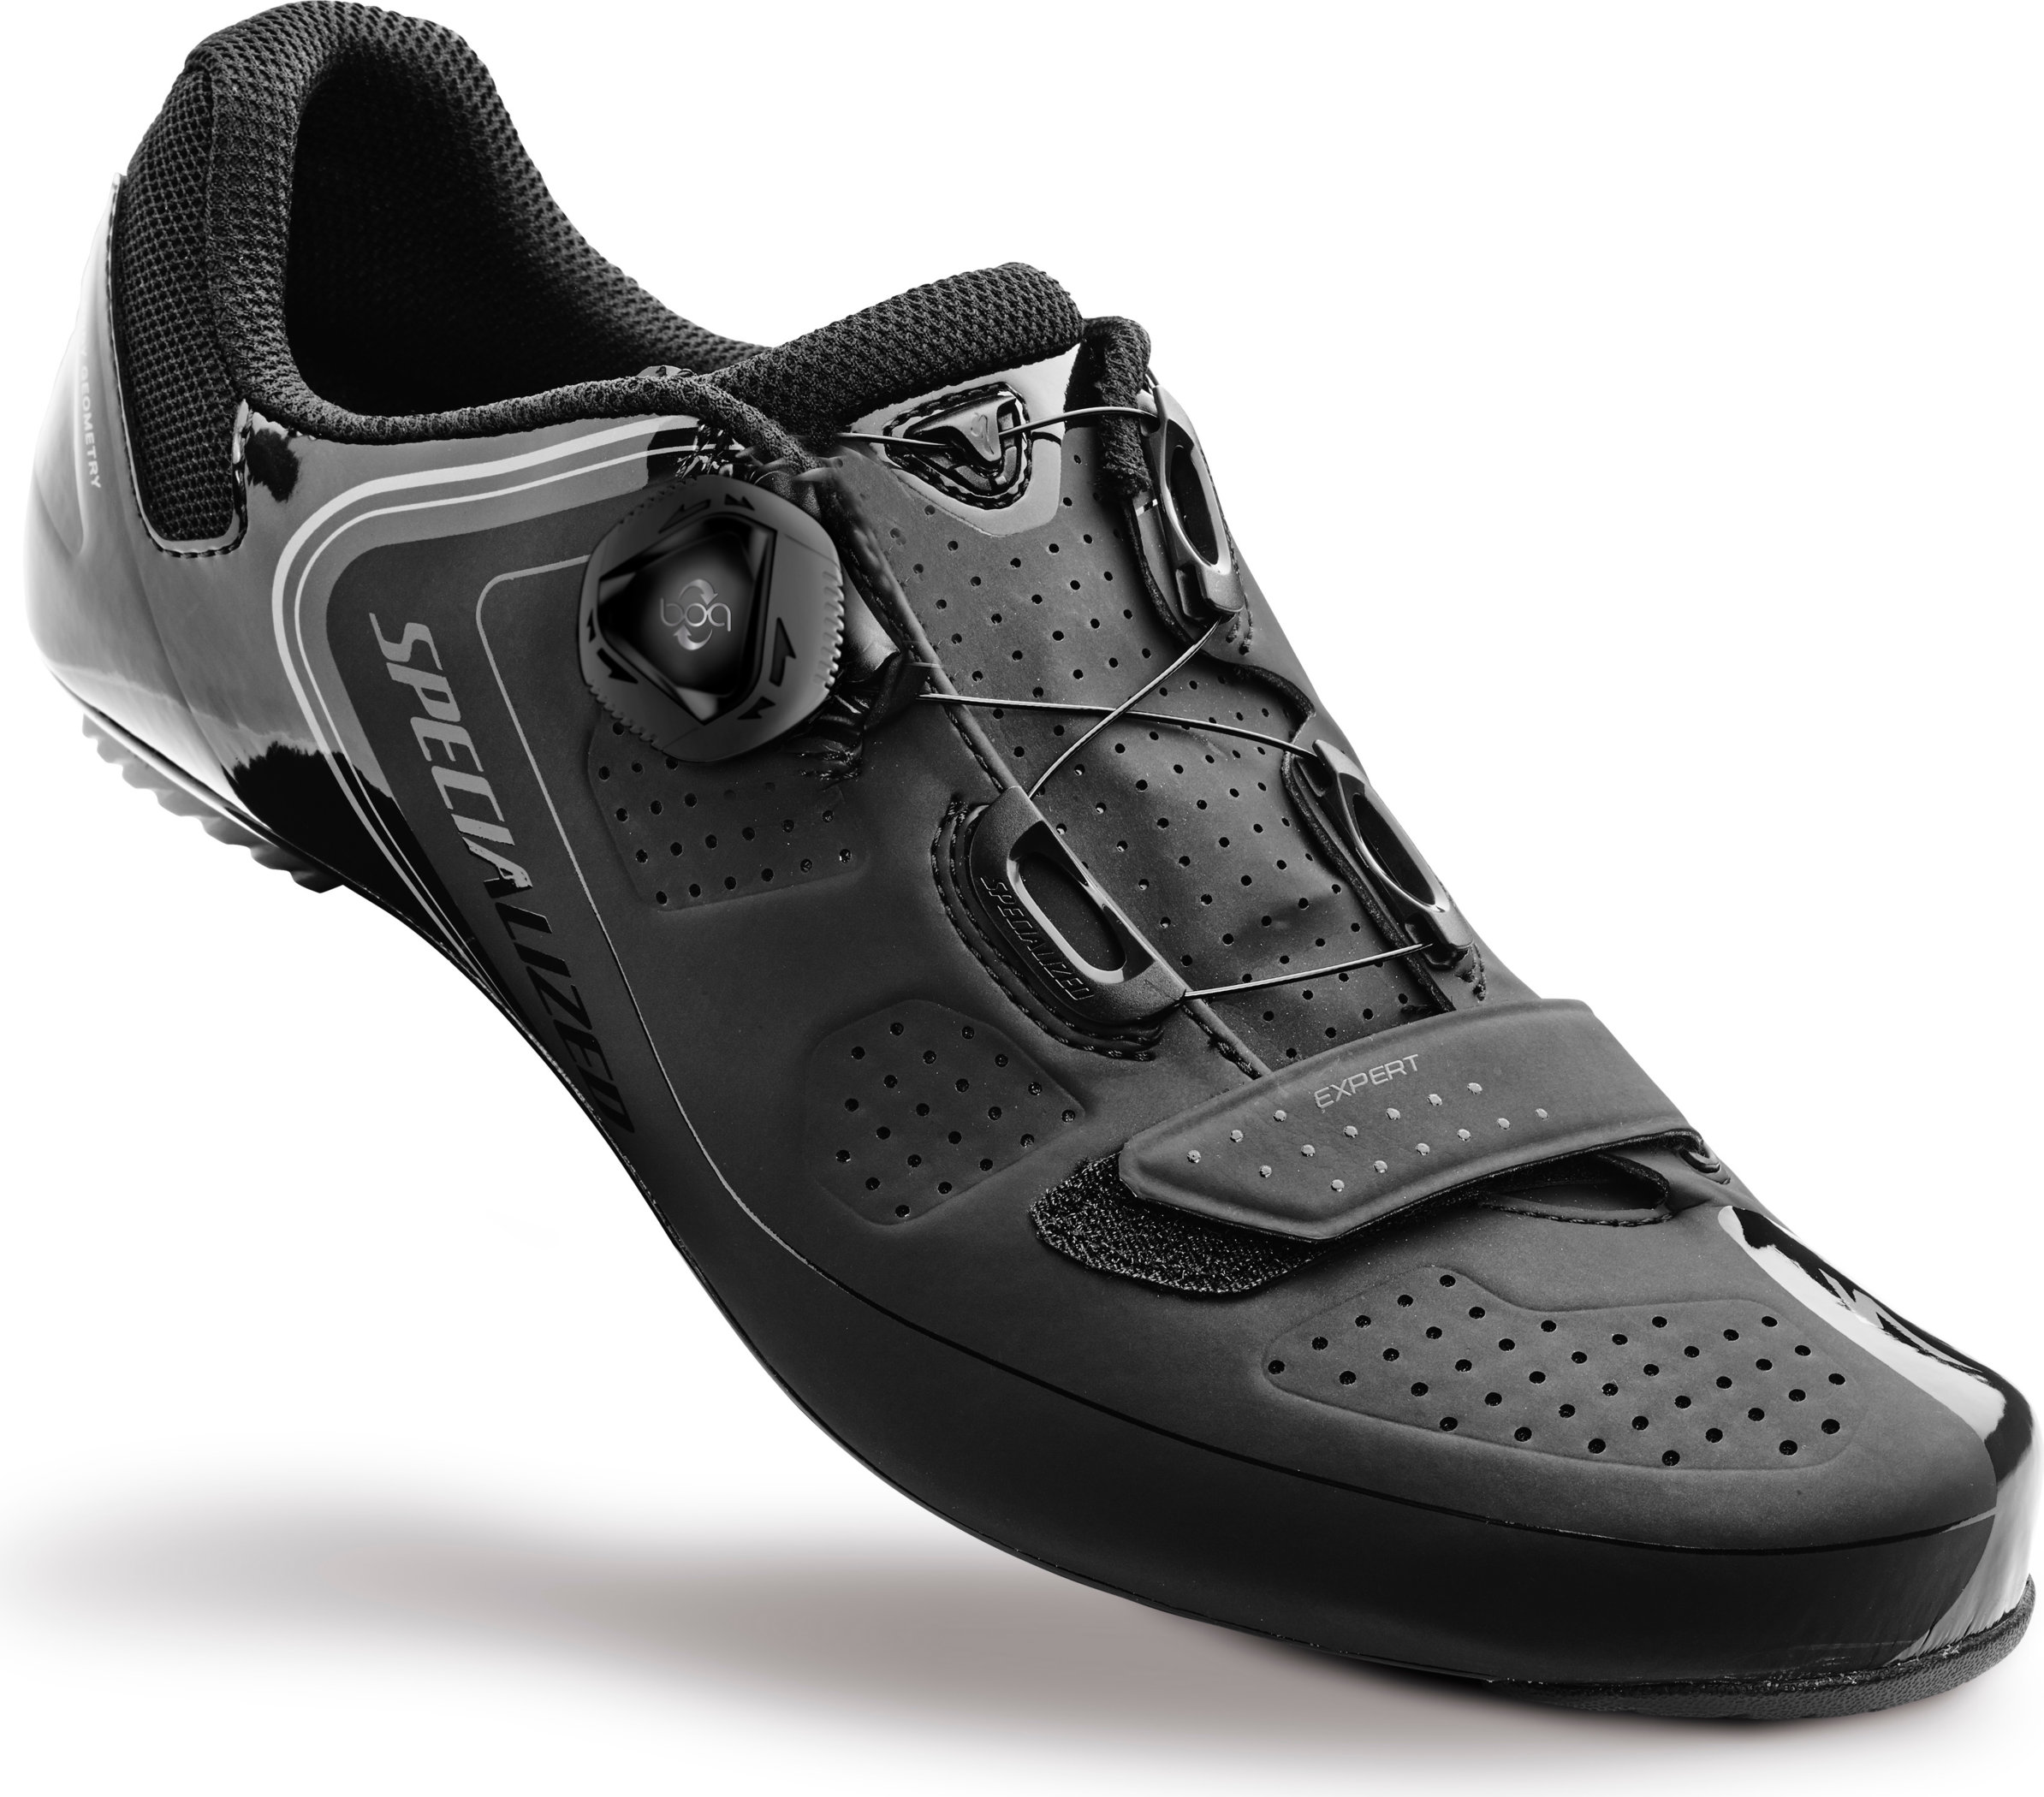 SPECIALIZED EXPERT RD SHOE BLK 45/11.5 - Bikedreams & Dustbikes